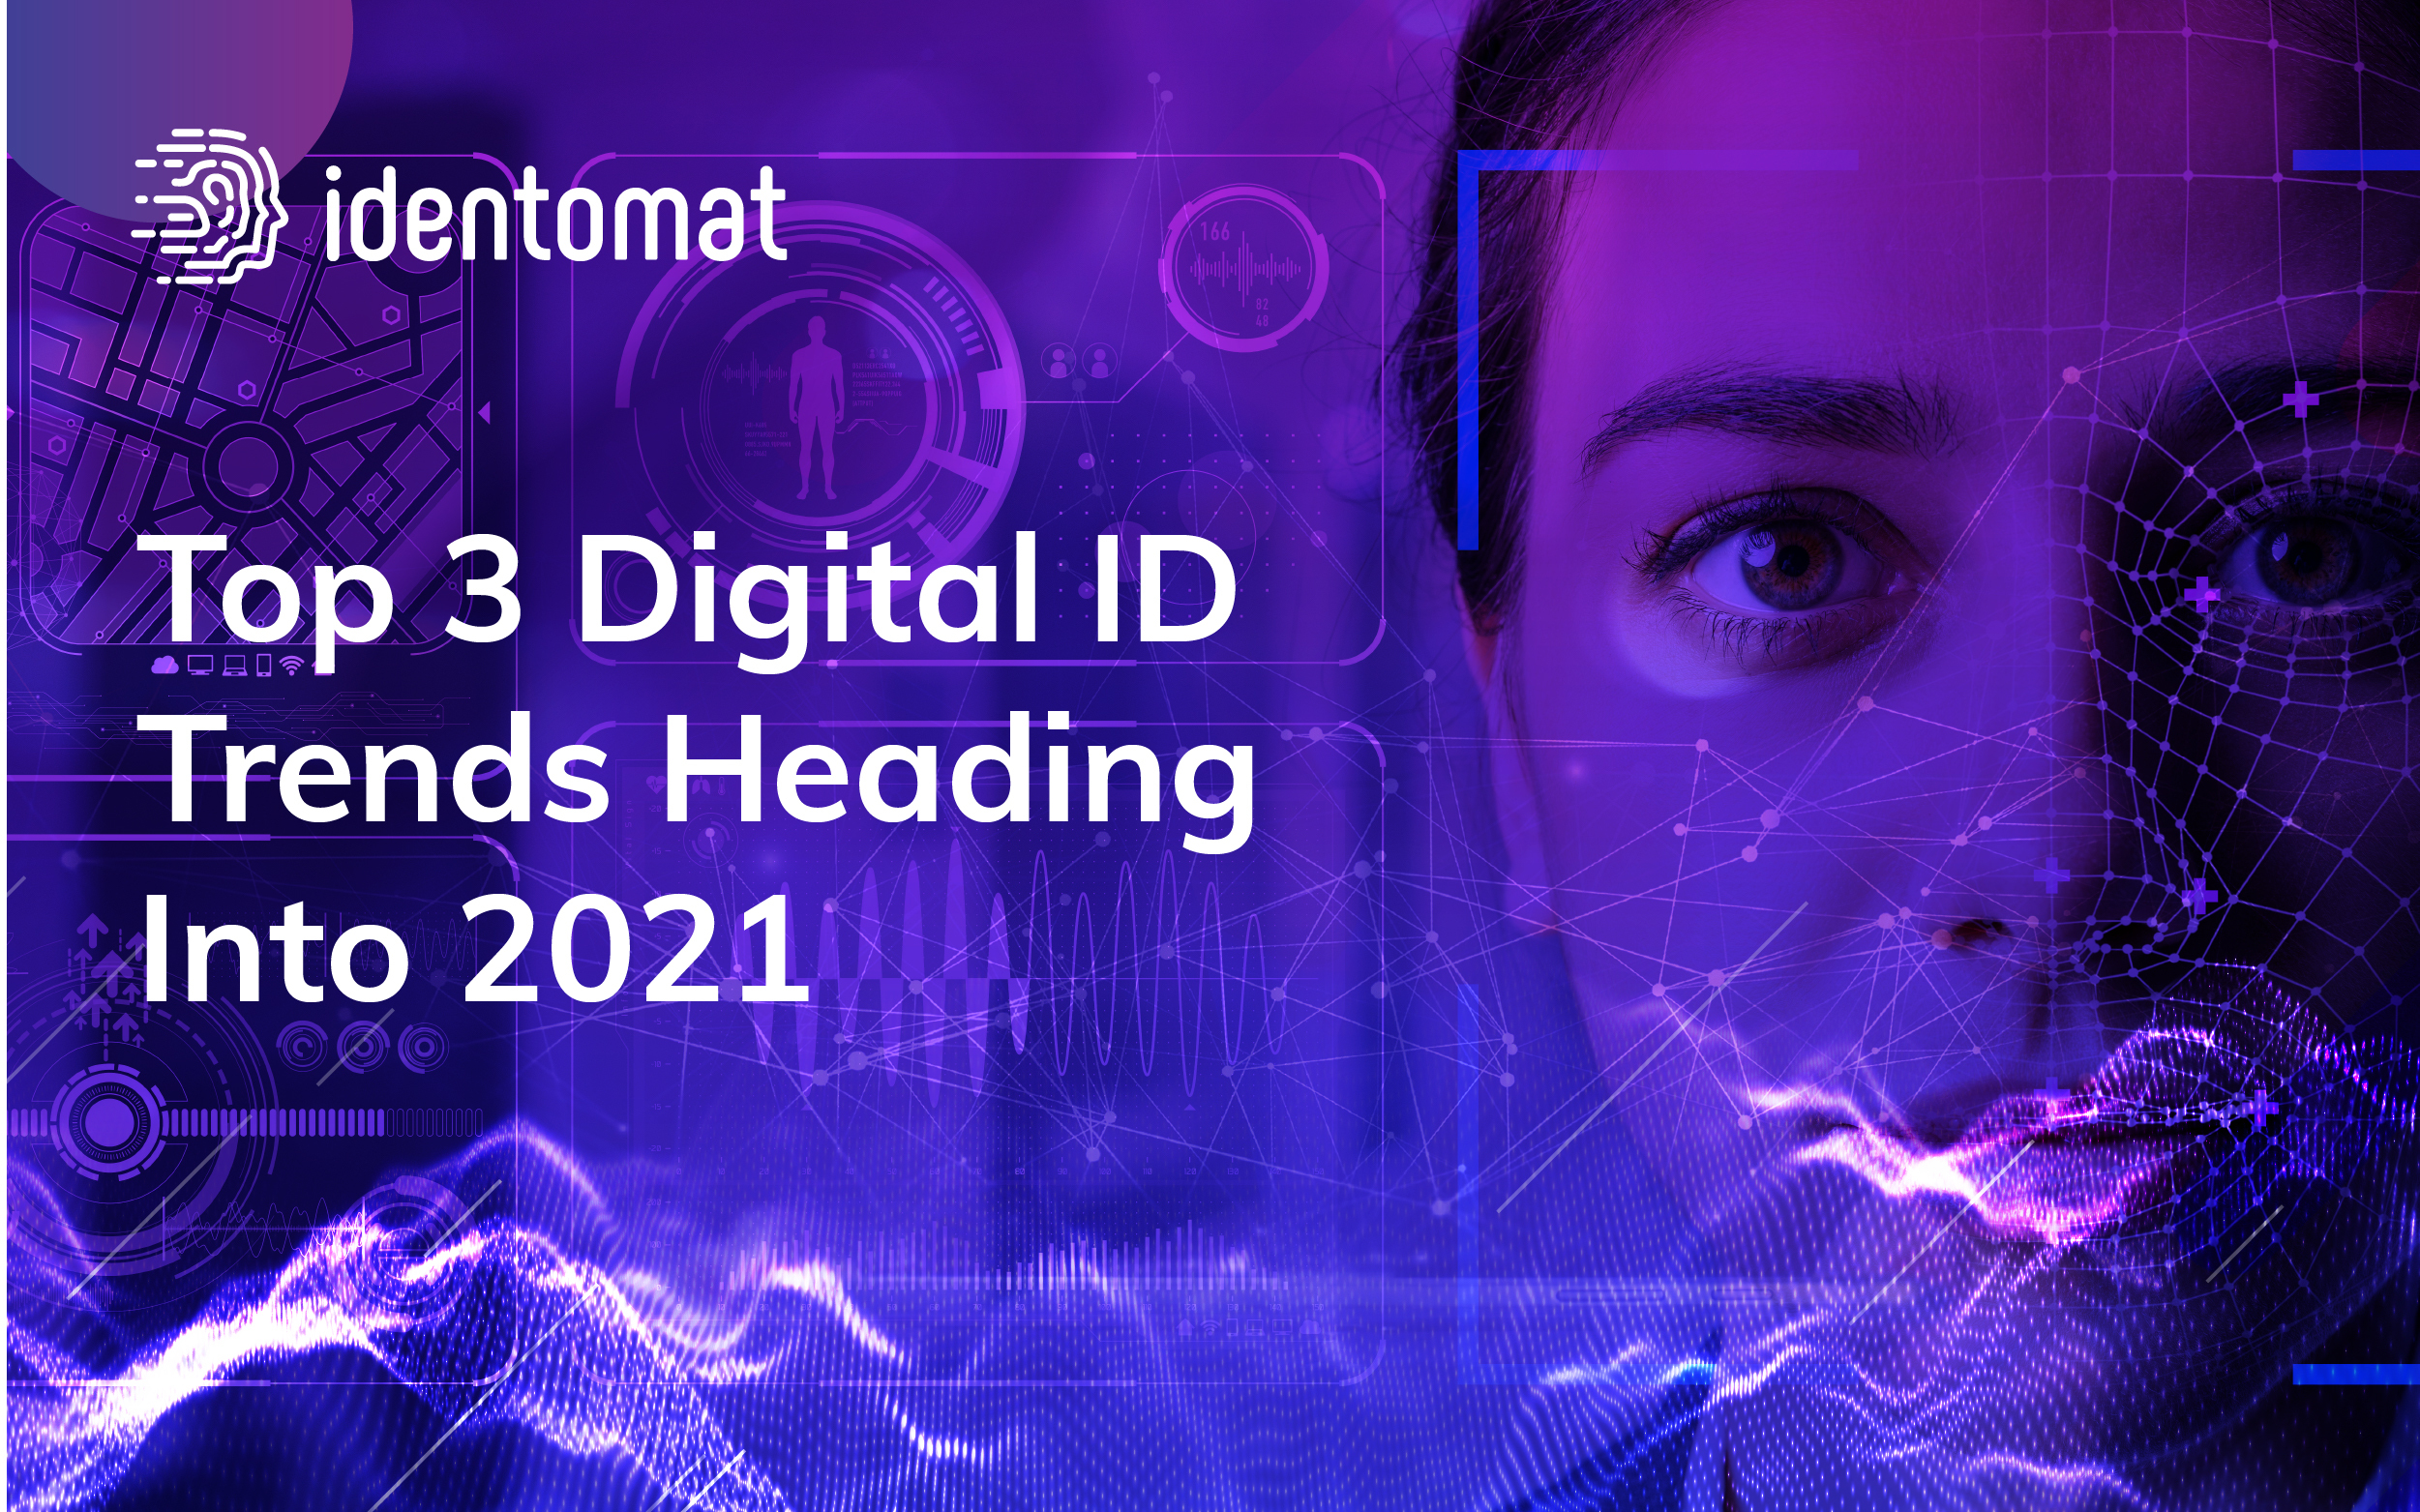 Top 3 Digital ID Trends Heading Into 2021